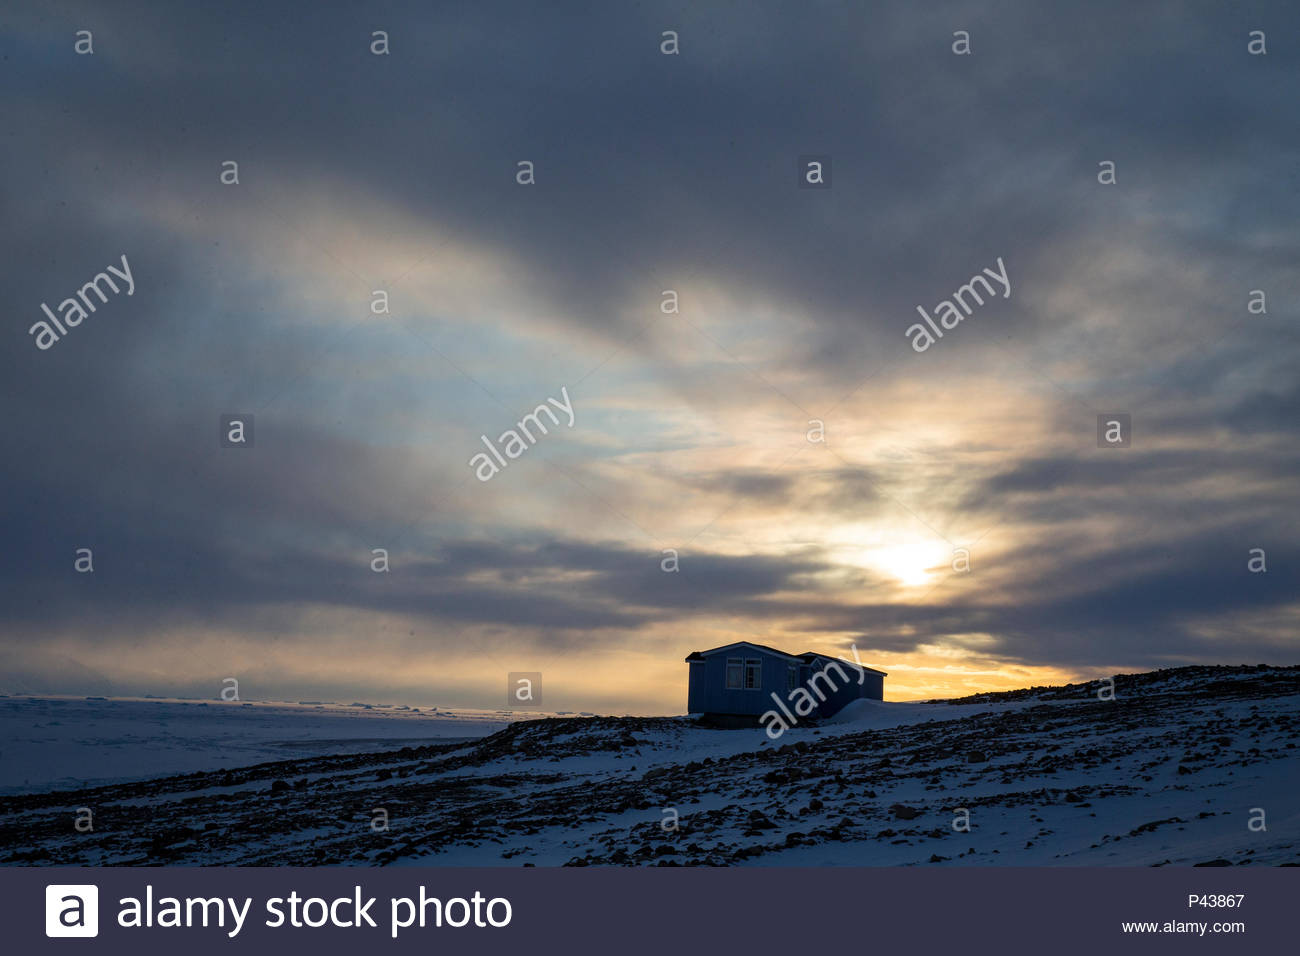 A built structure on the edge of the sea ice. - Stock Image